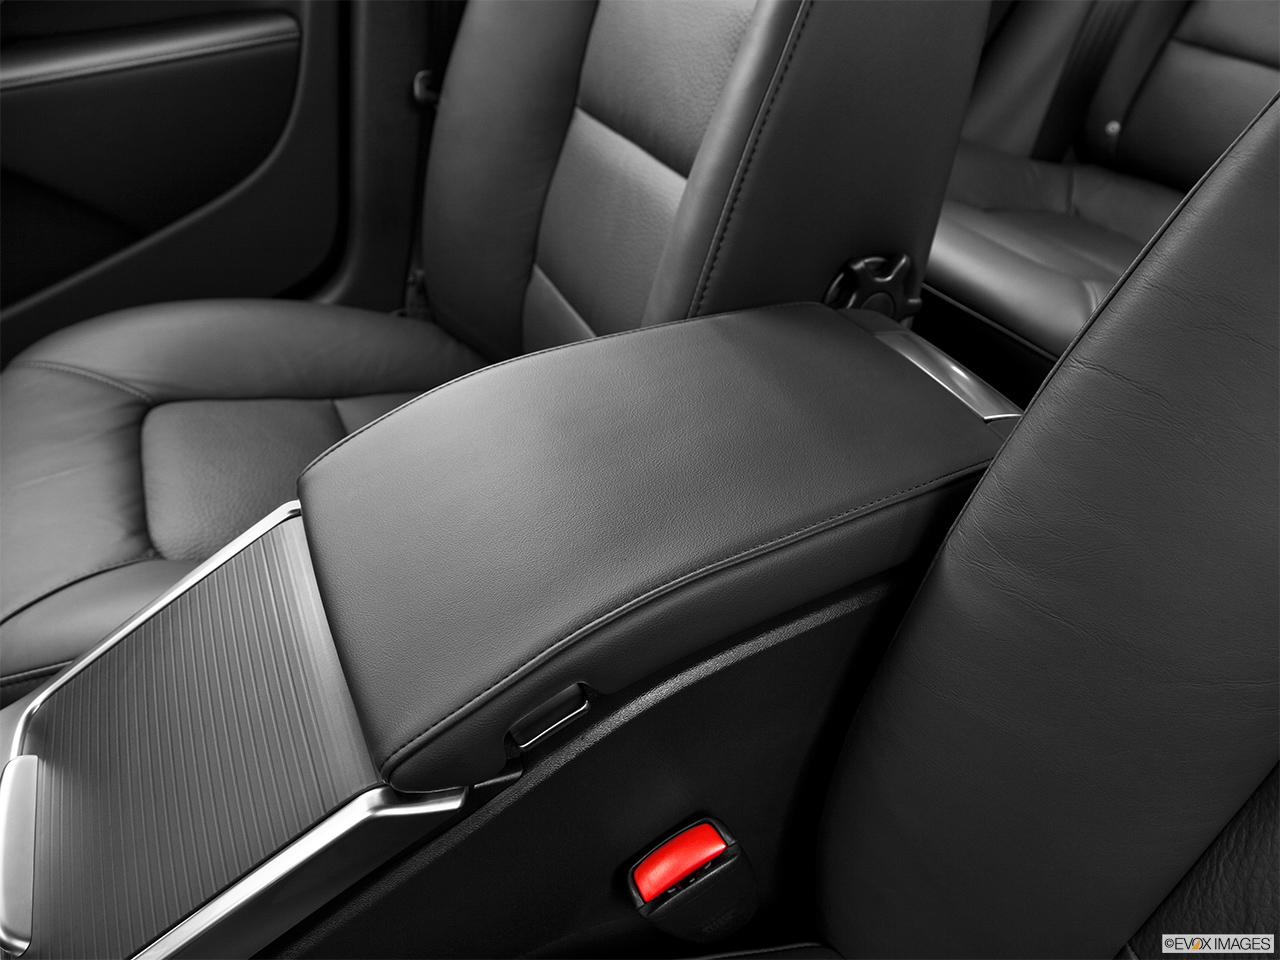 2013 Volvo S80 3.2 Platinum Front center console with closed lid, from driver's side looking down